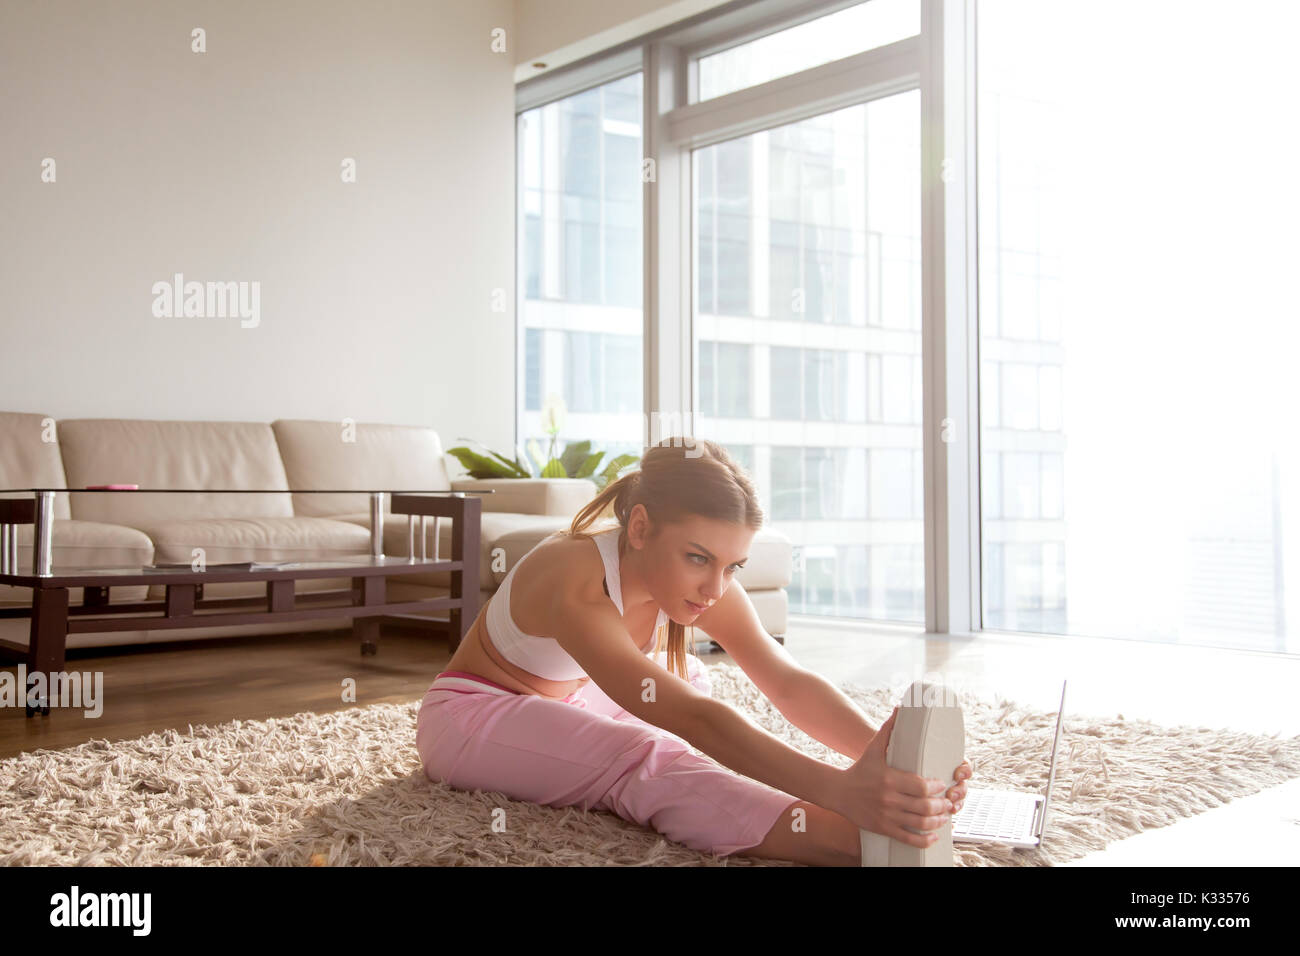 Woman doing exercise for flexibility increase - Stock Image